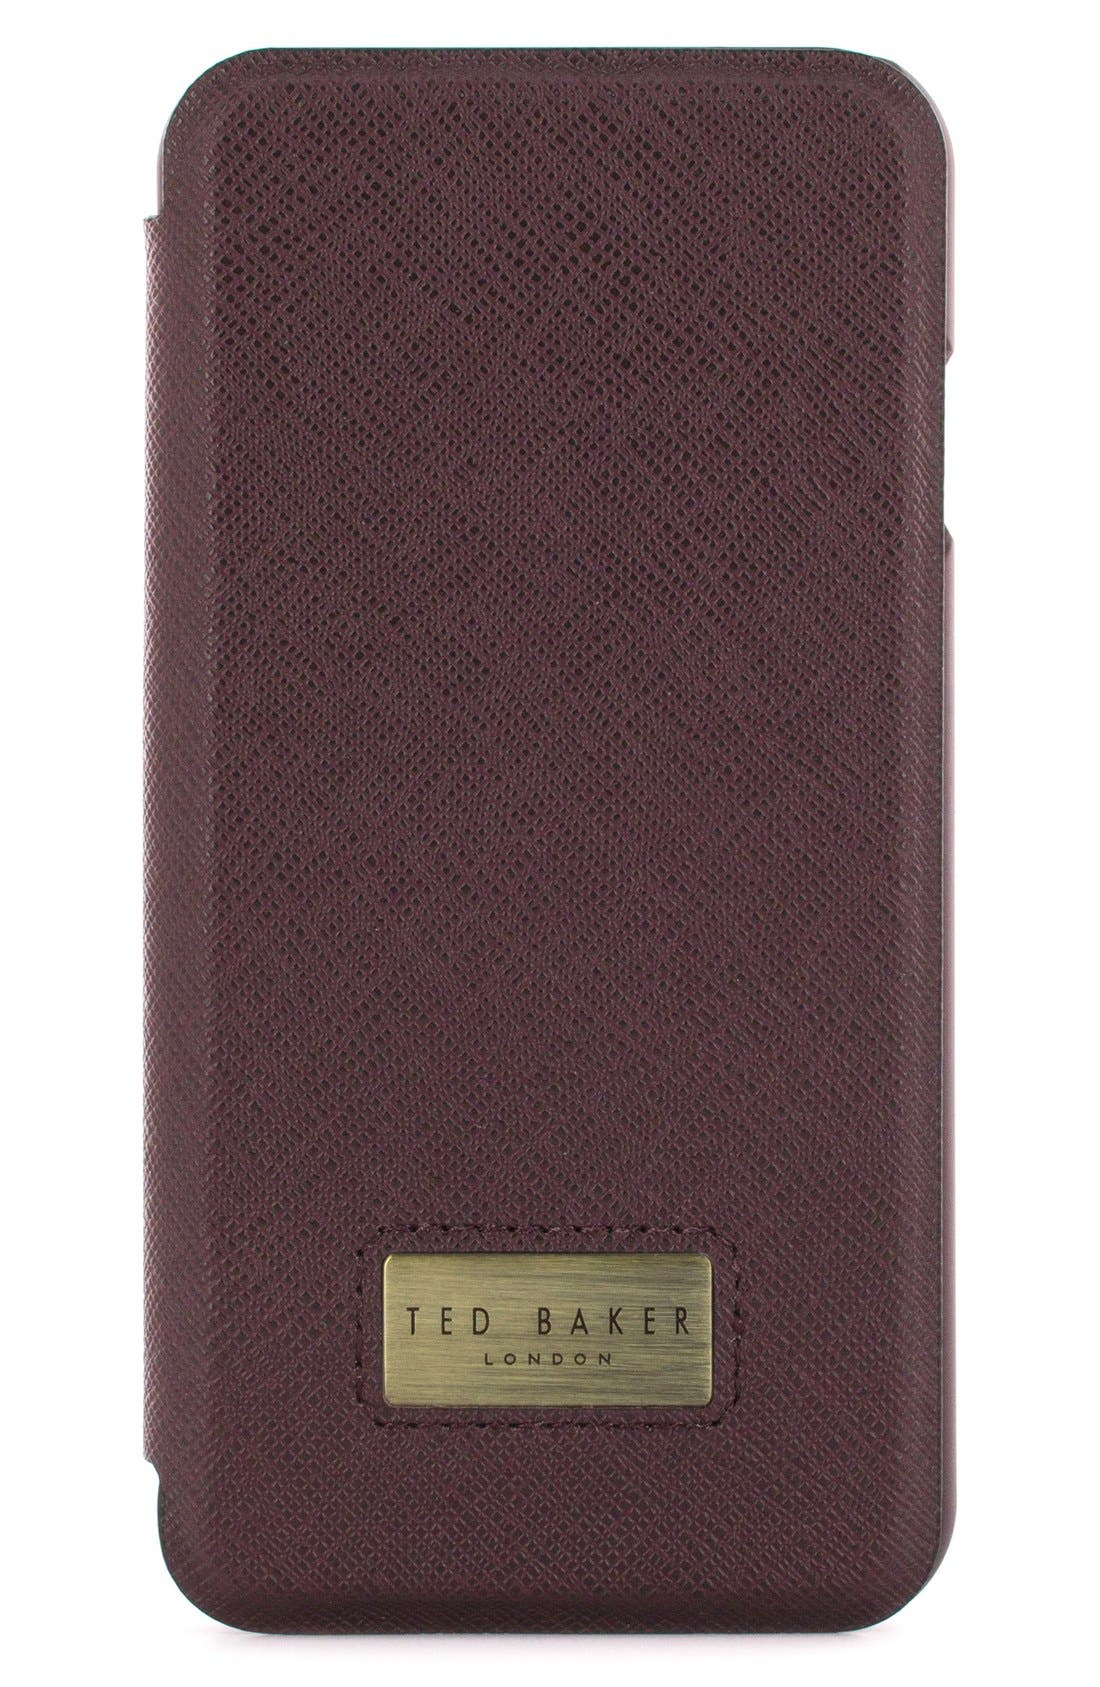 TED BAKER LONDON Aries iPhone 7 Folio